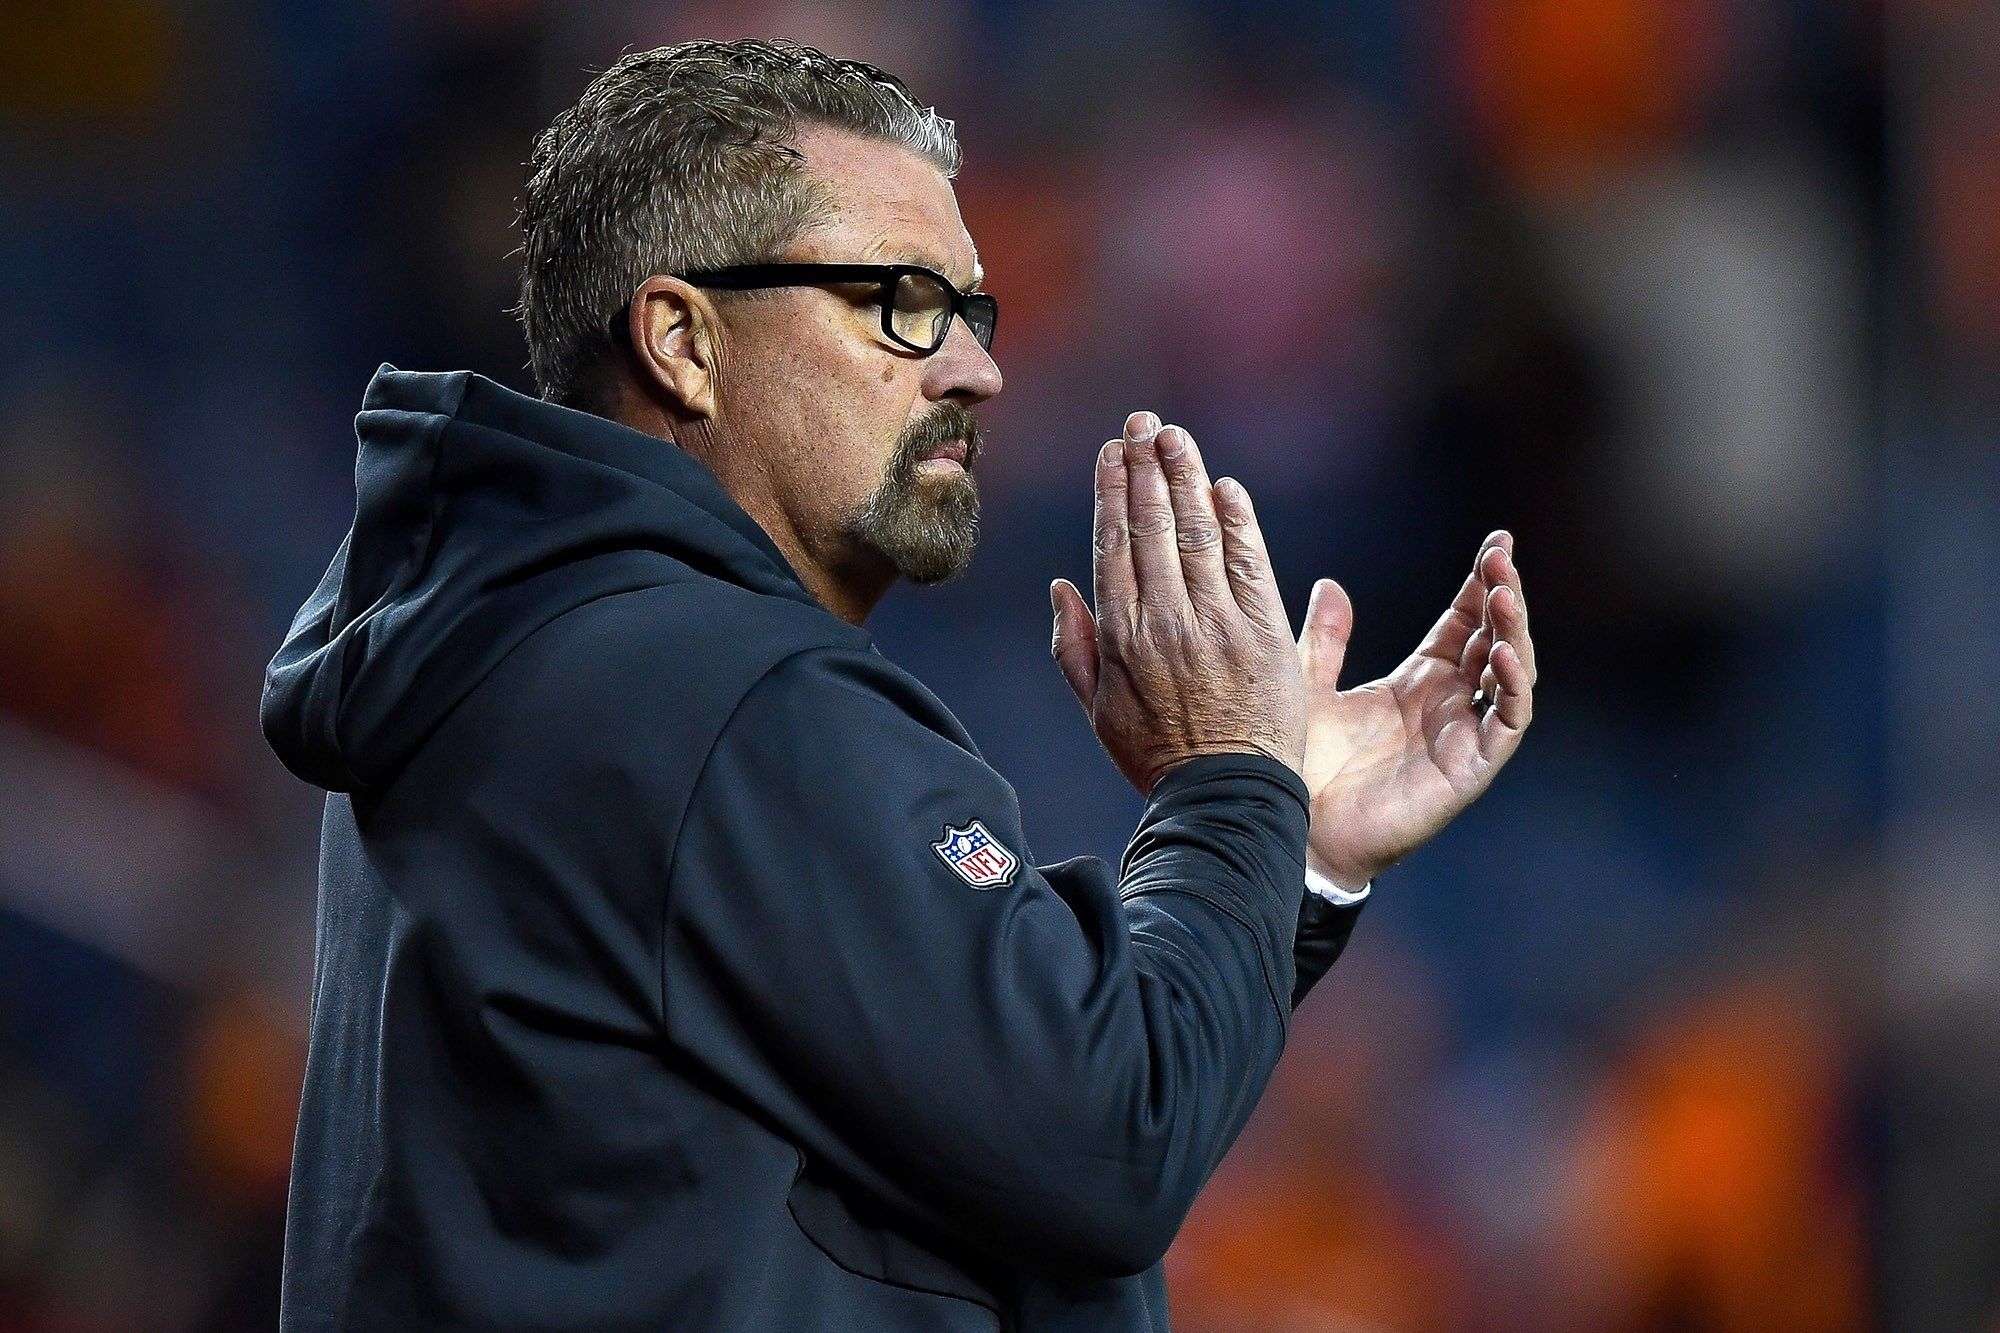 Jets moving to hire Gregg Williams as defensive